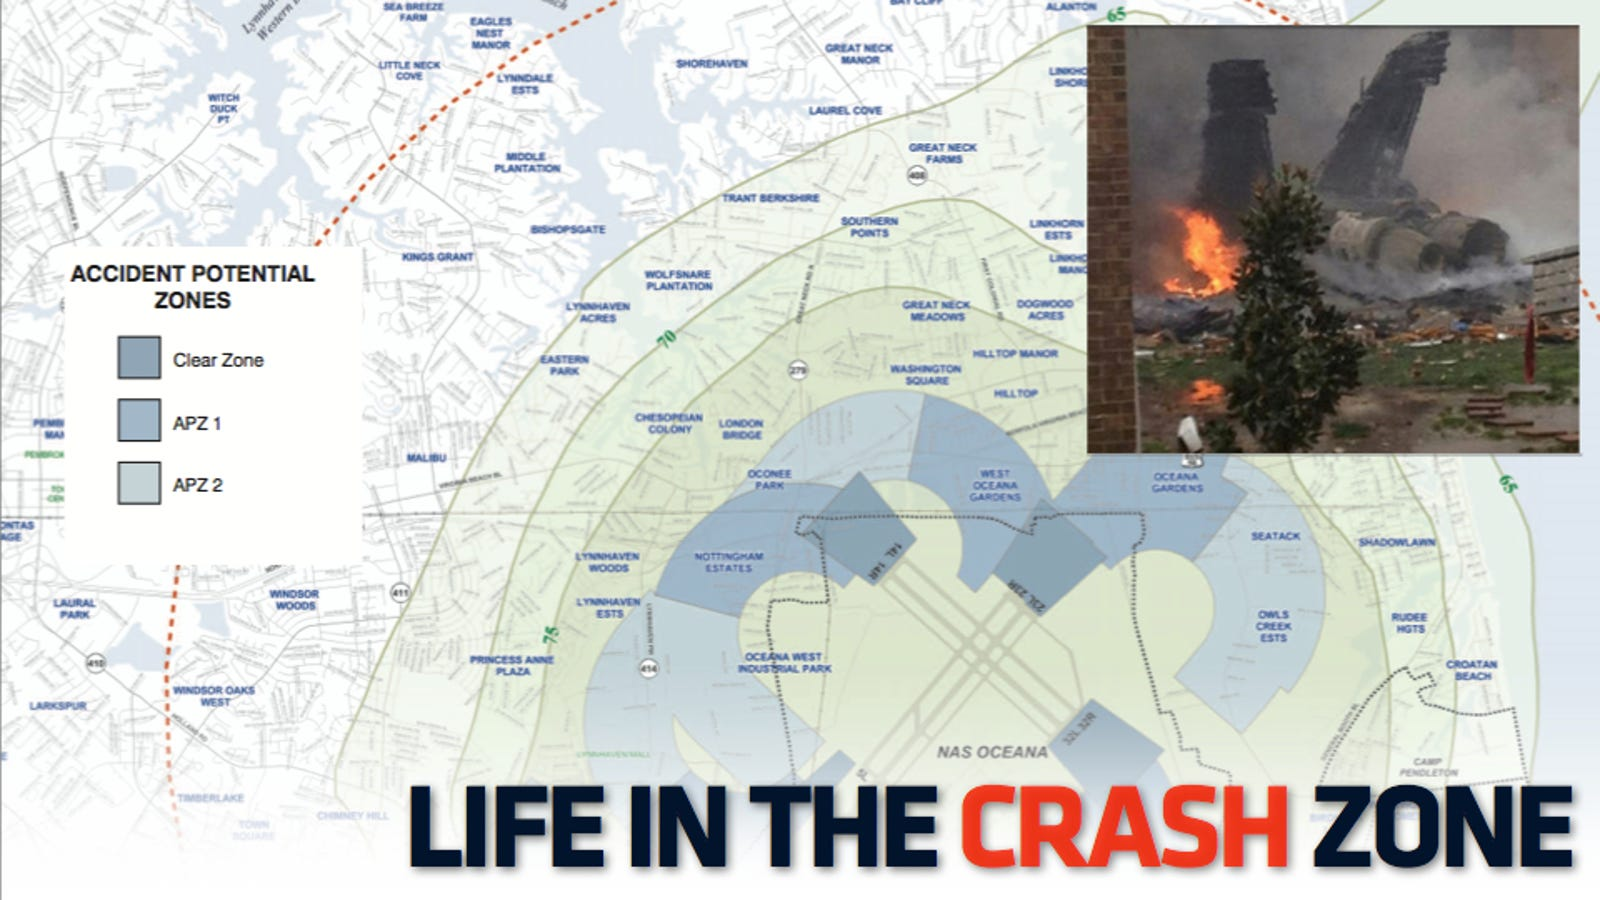 What Its Like To Live In The Virginia Beach Air Station Crash Zone F18 Jet Engine Diagram